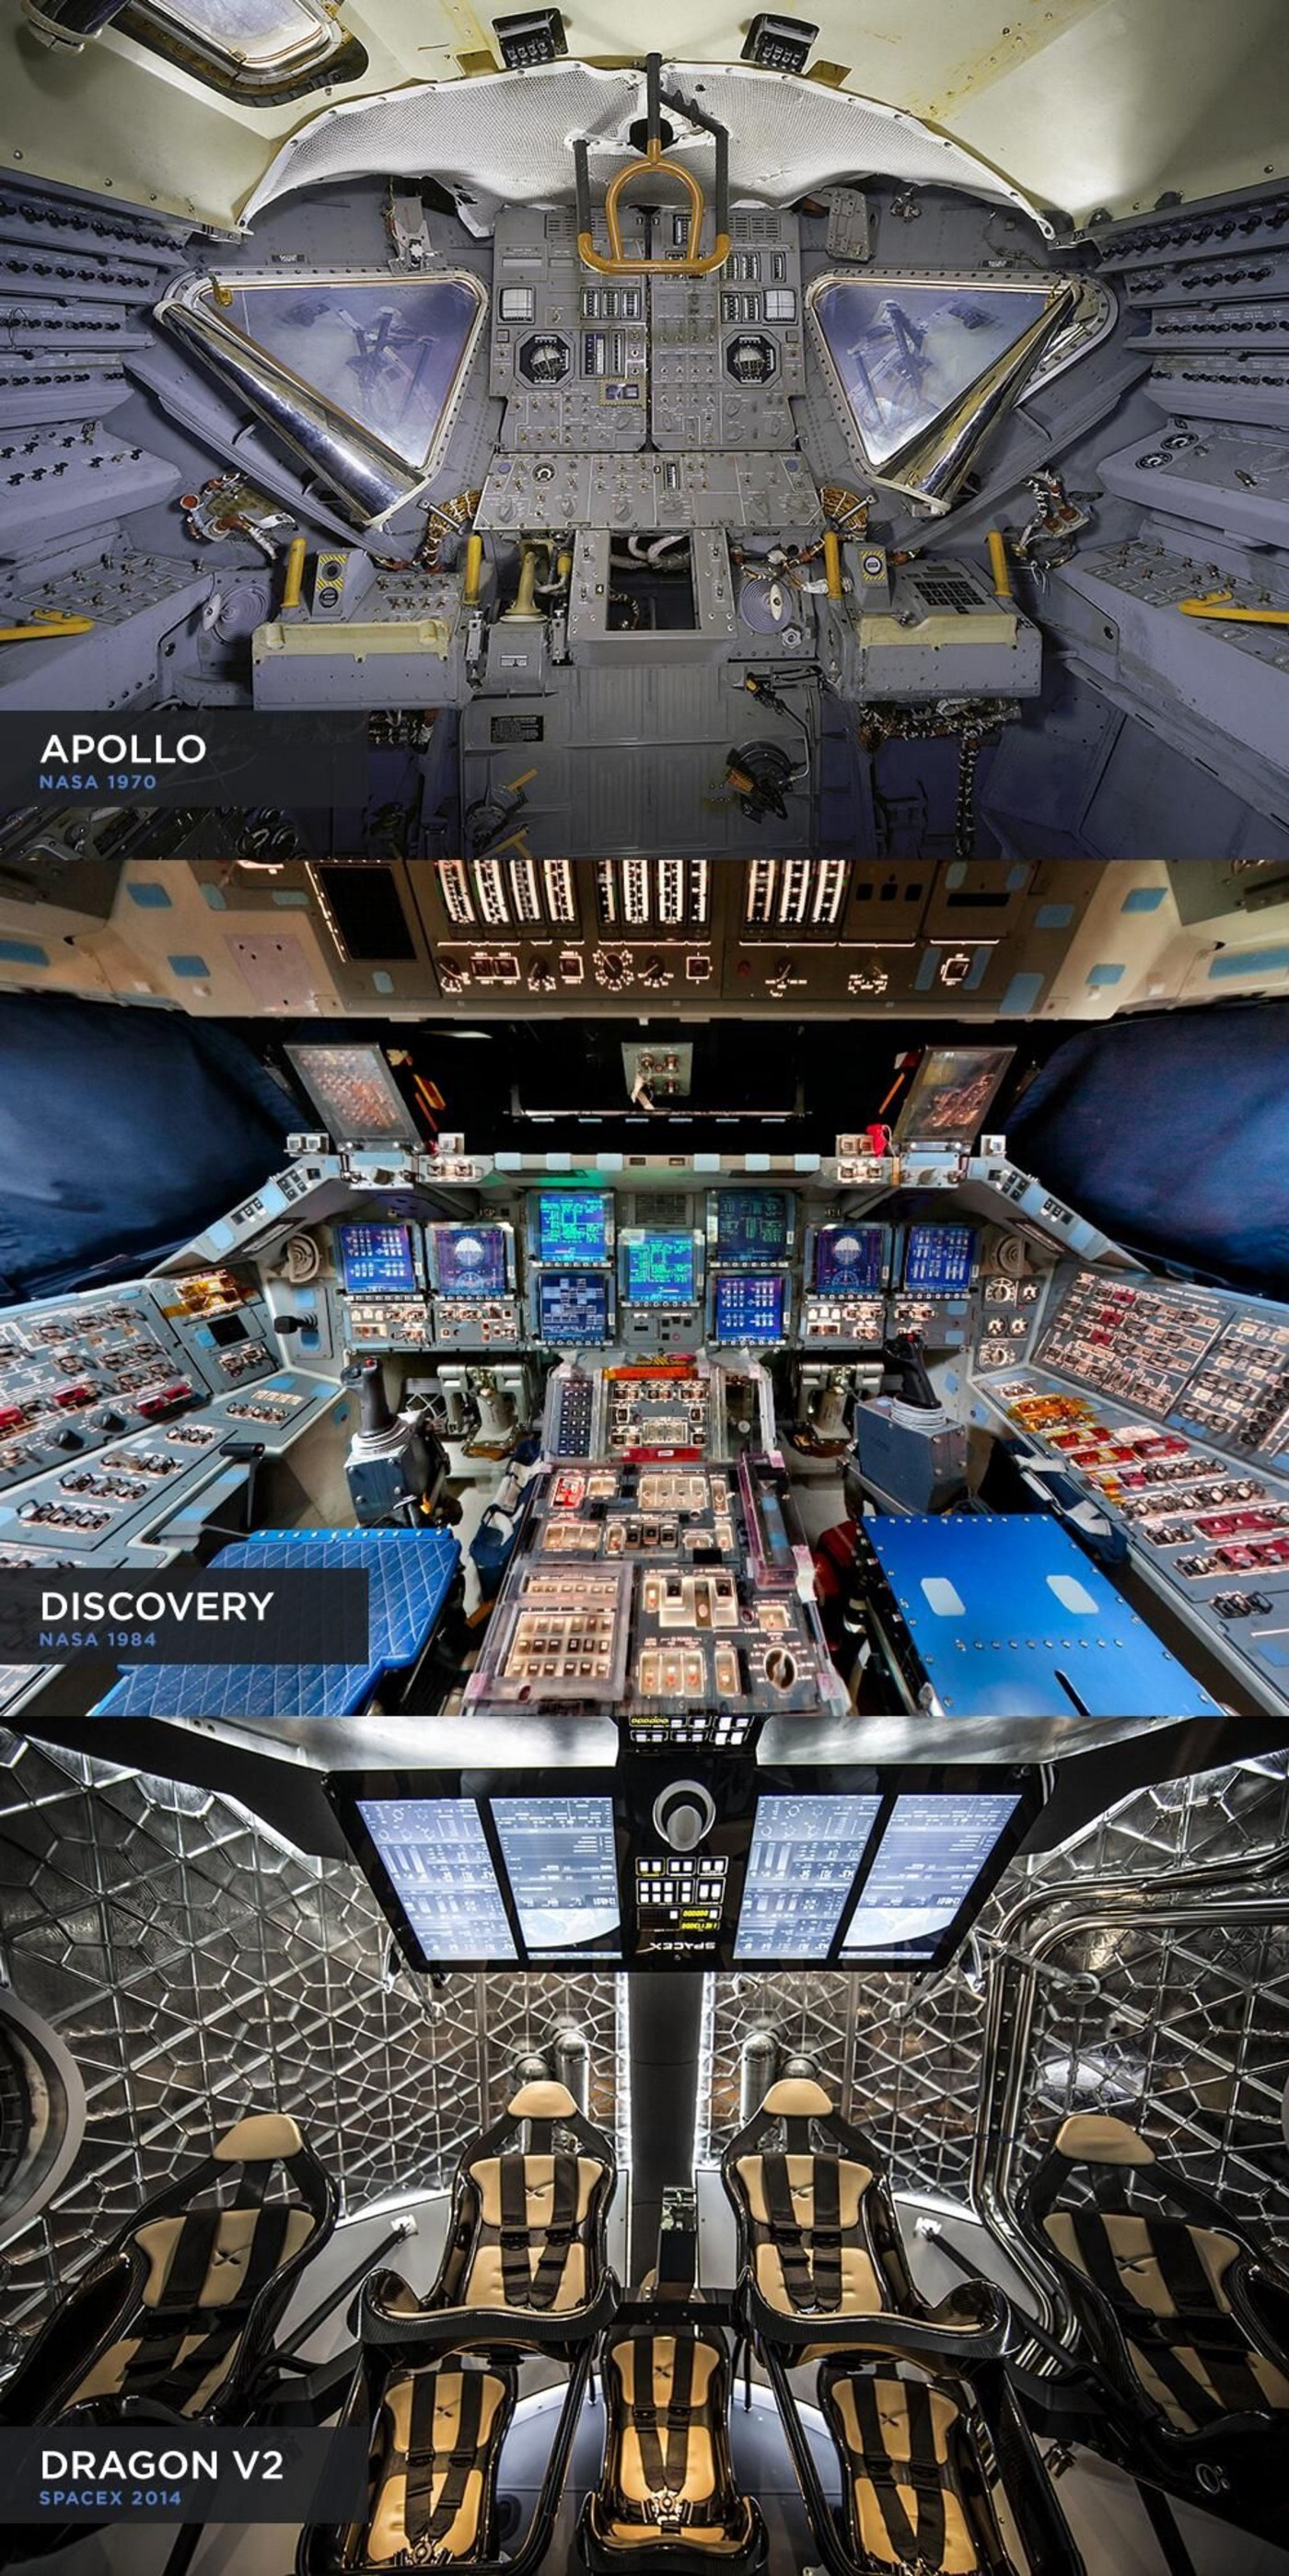 Comparison of space shuttle cockpits from 1970 to 2014